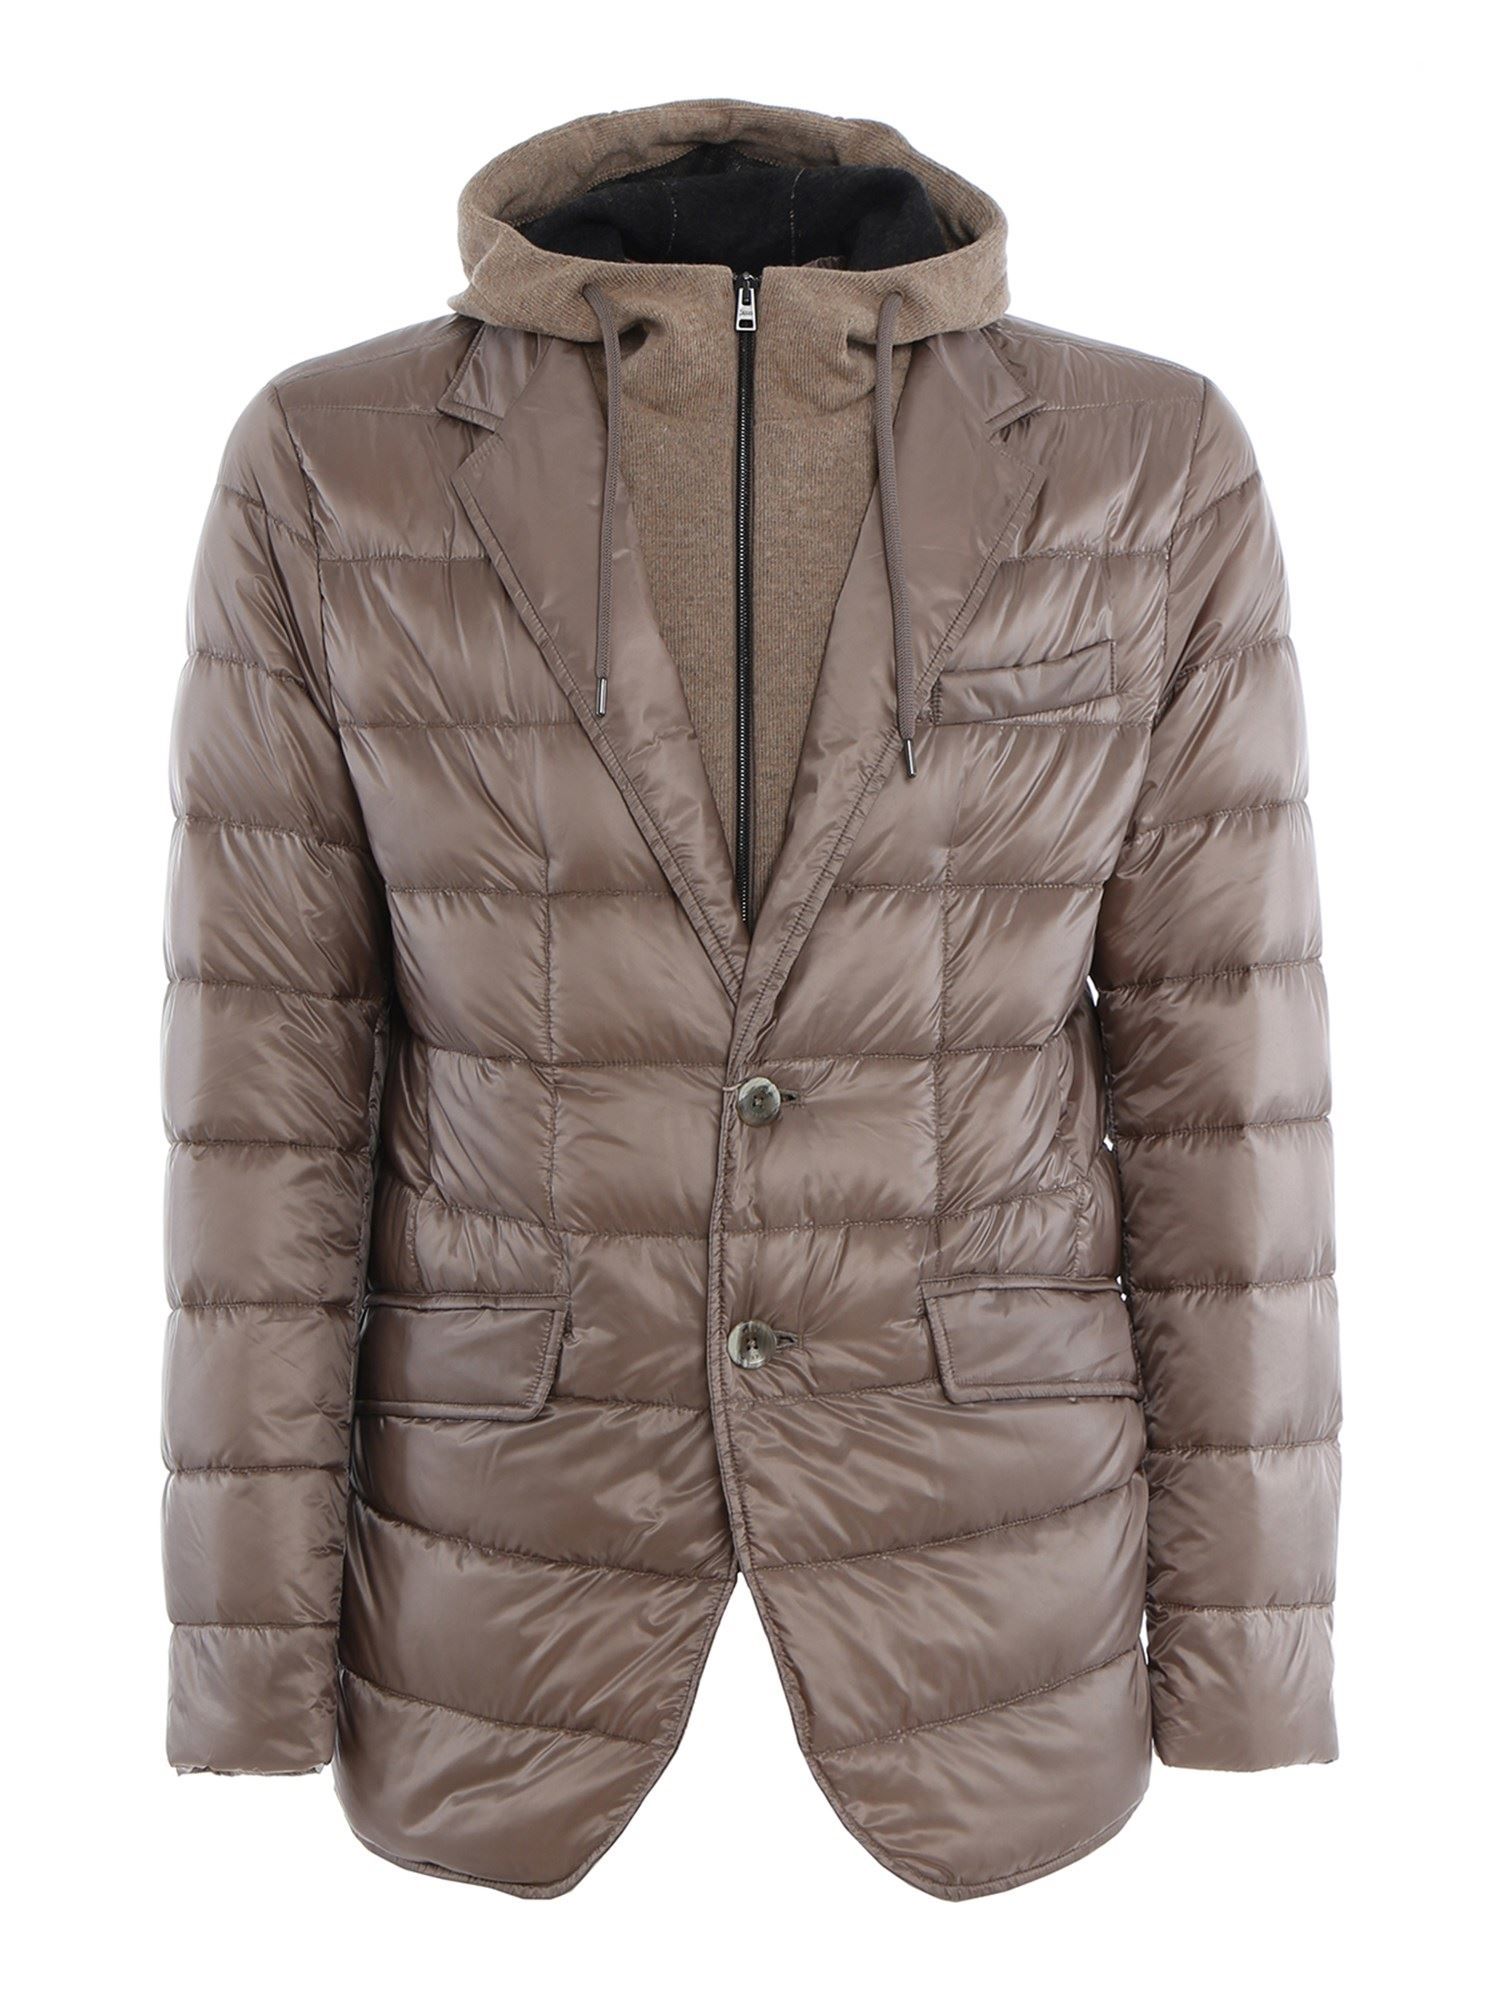 Herno Downs REMOVABLE DOUBLE FRONT PADDED JACKET IN BEIGE